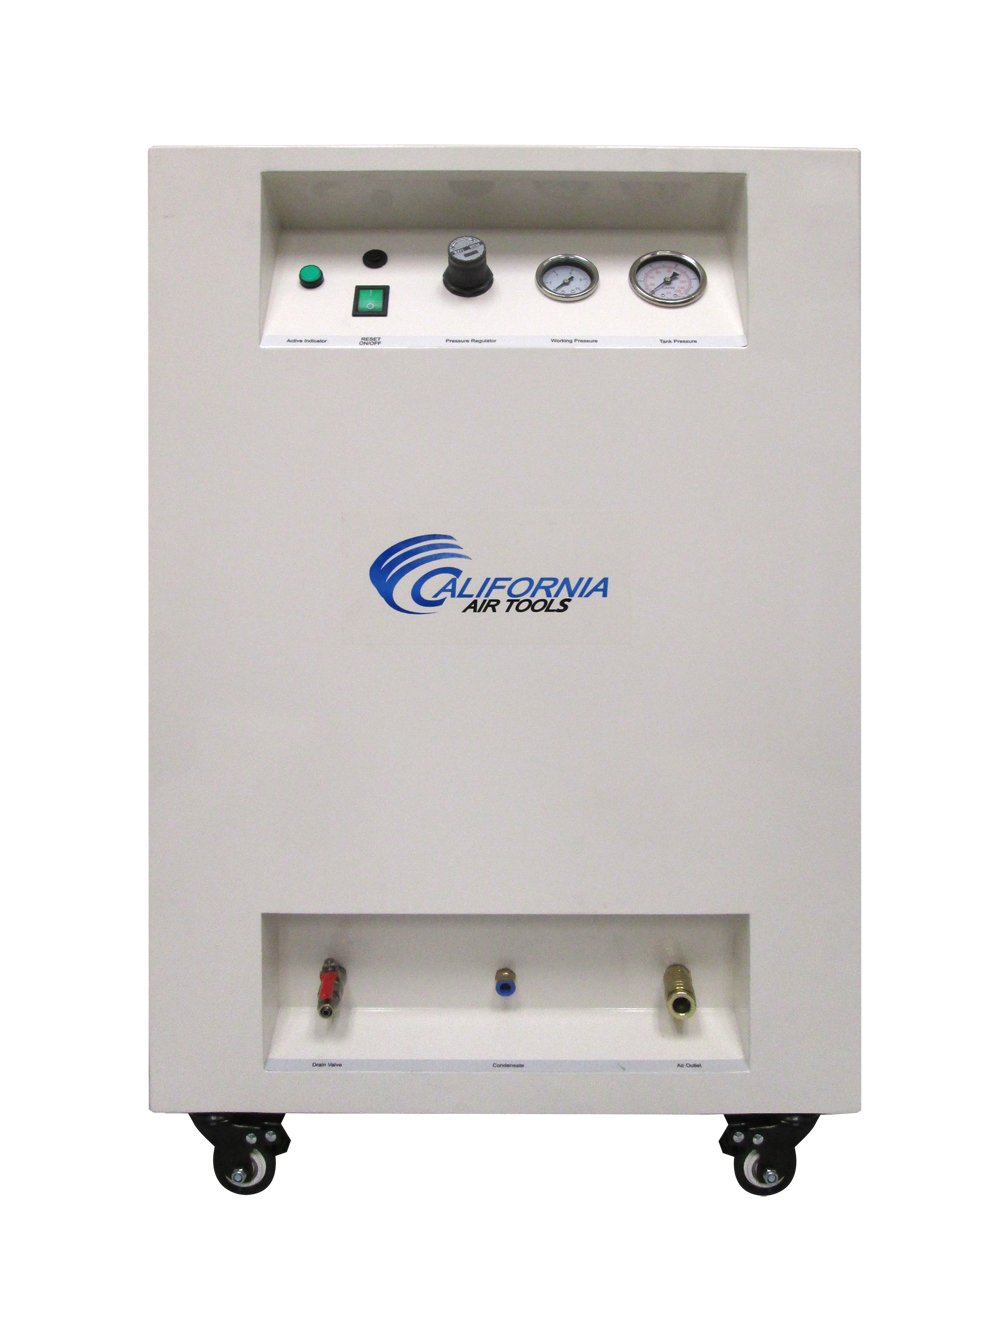 California Air Tools 10020SPC Ultra Quiet & Oil-Free 2.0 hp Steel Tank Air Compressor in Sound Proof Cabinet, 10 gal, White